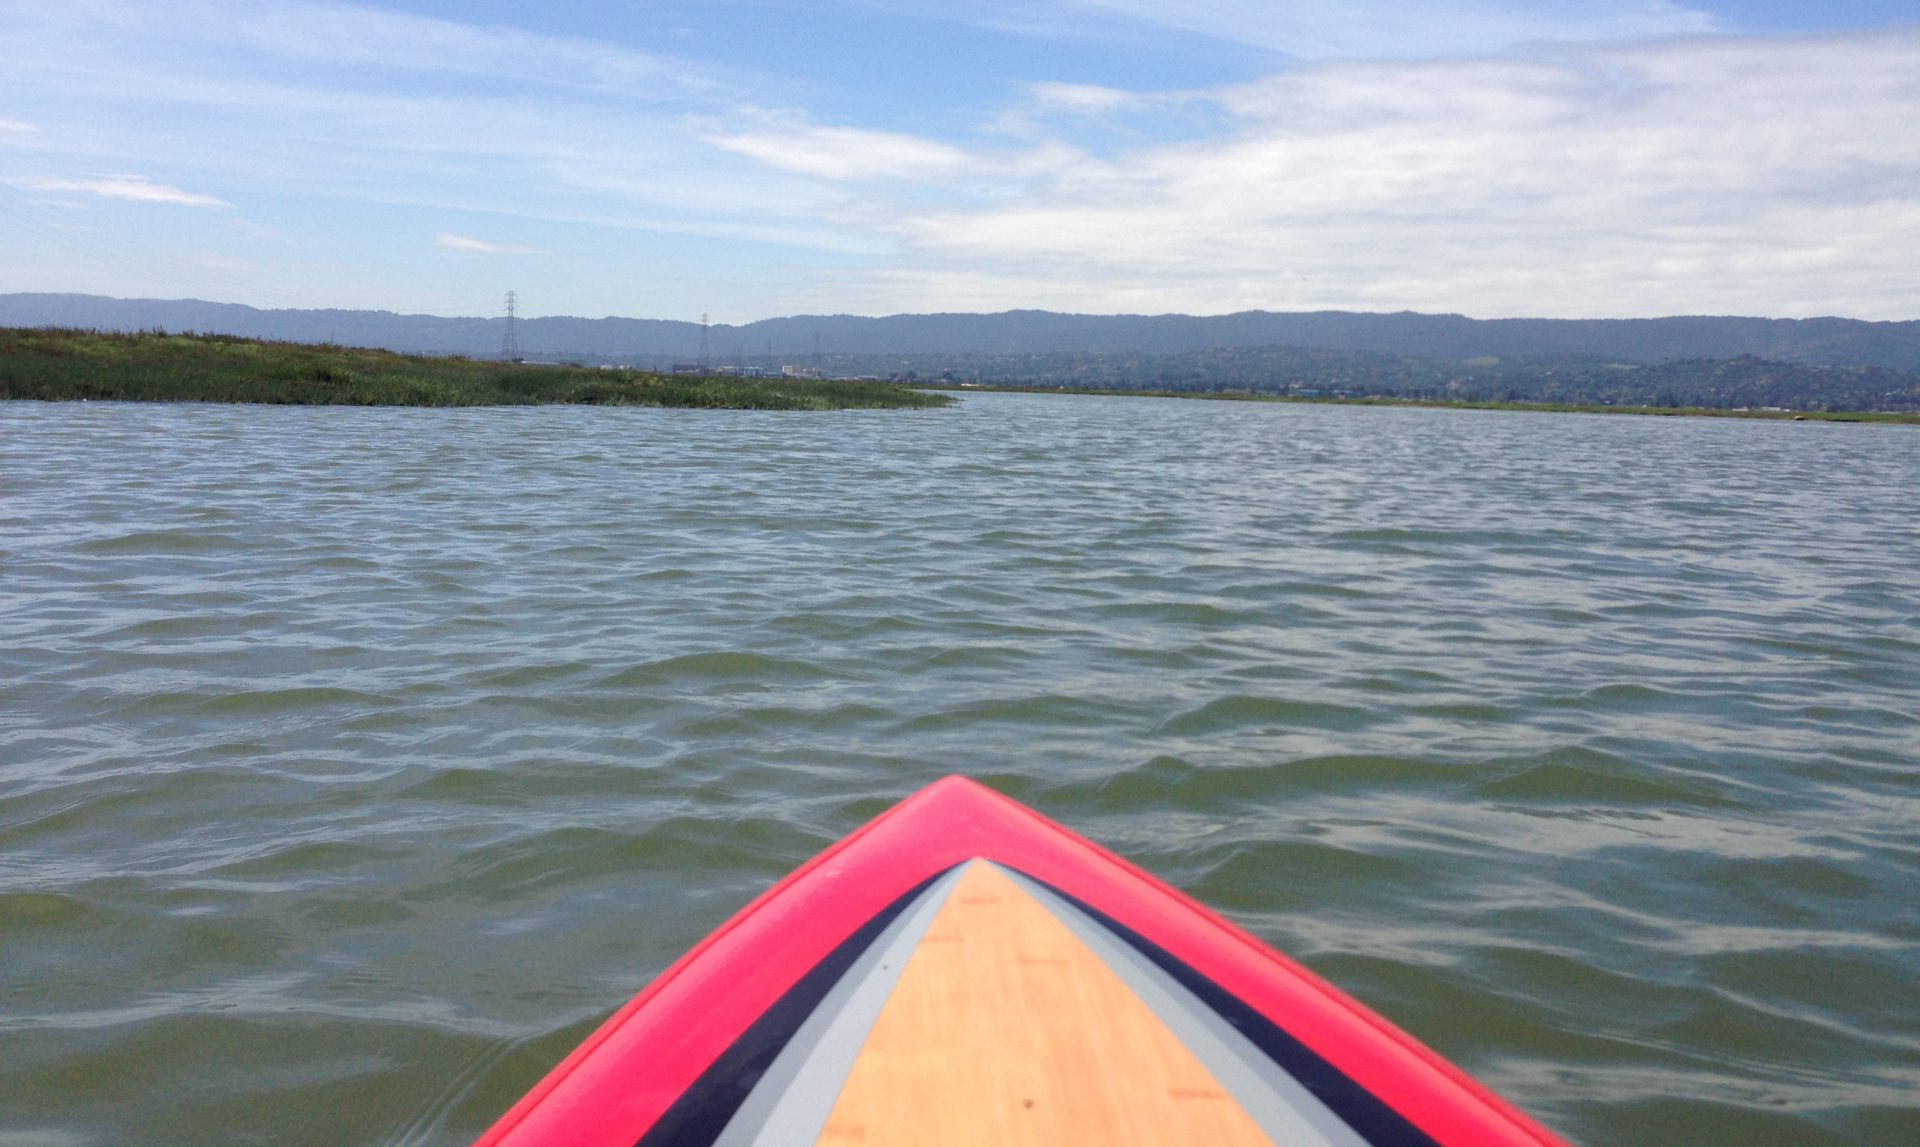 View from paddle board of open water and flat marshlands